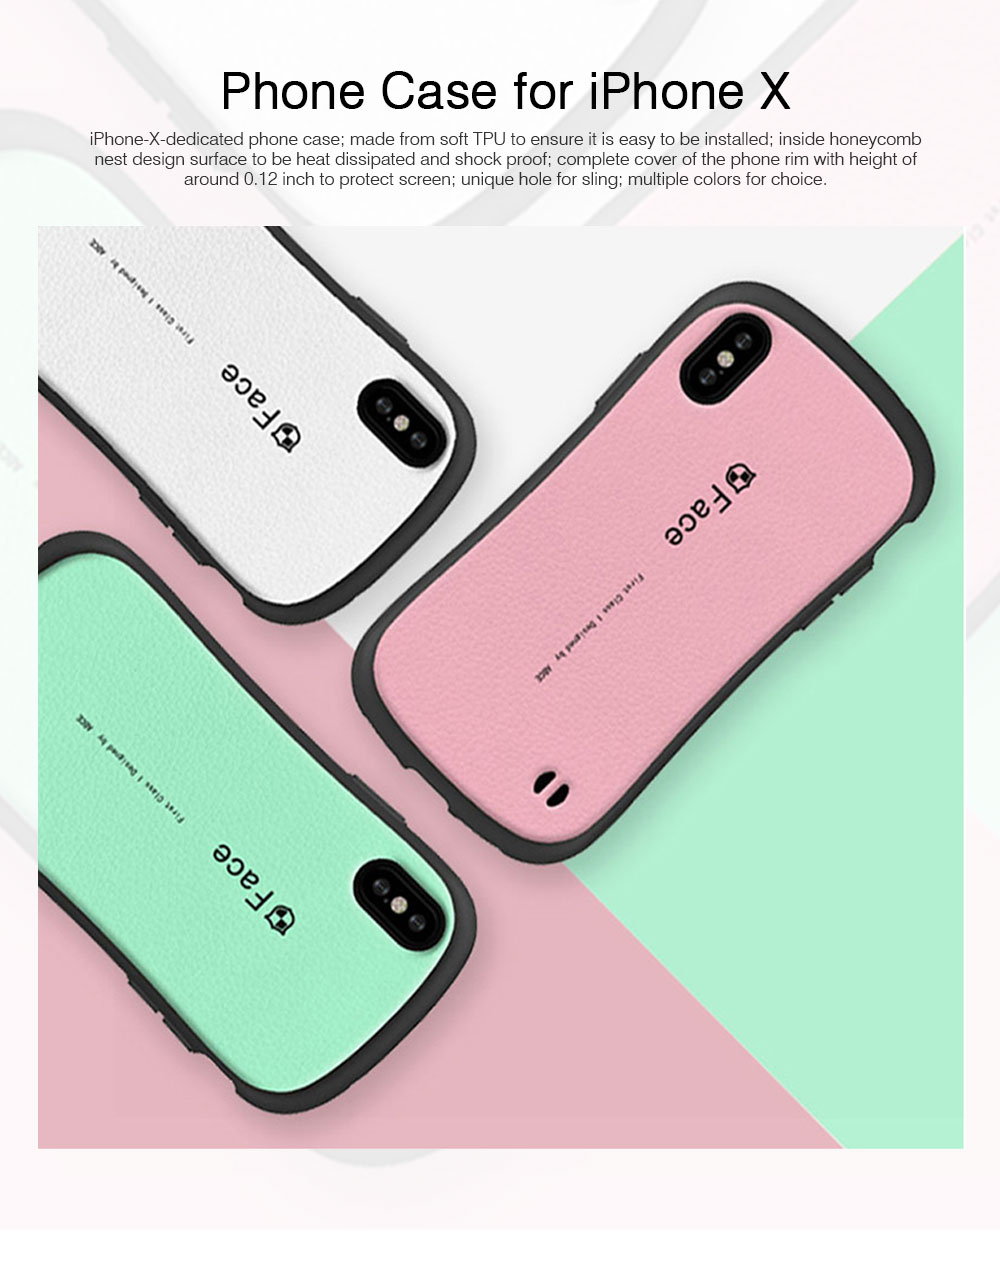 Original iface Mall Phone Case for iPhone X, Silicone Hard Strong Protective Phone Shell, Back Cover for iPhone X, iPhone 10 Slim Fit Shockproof 0